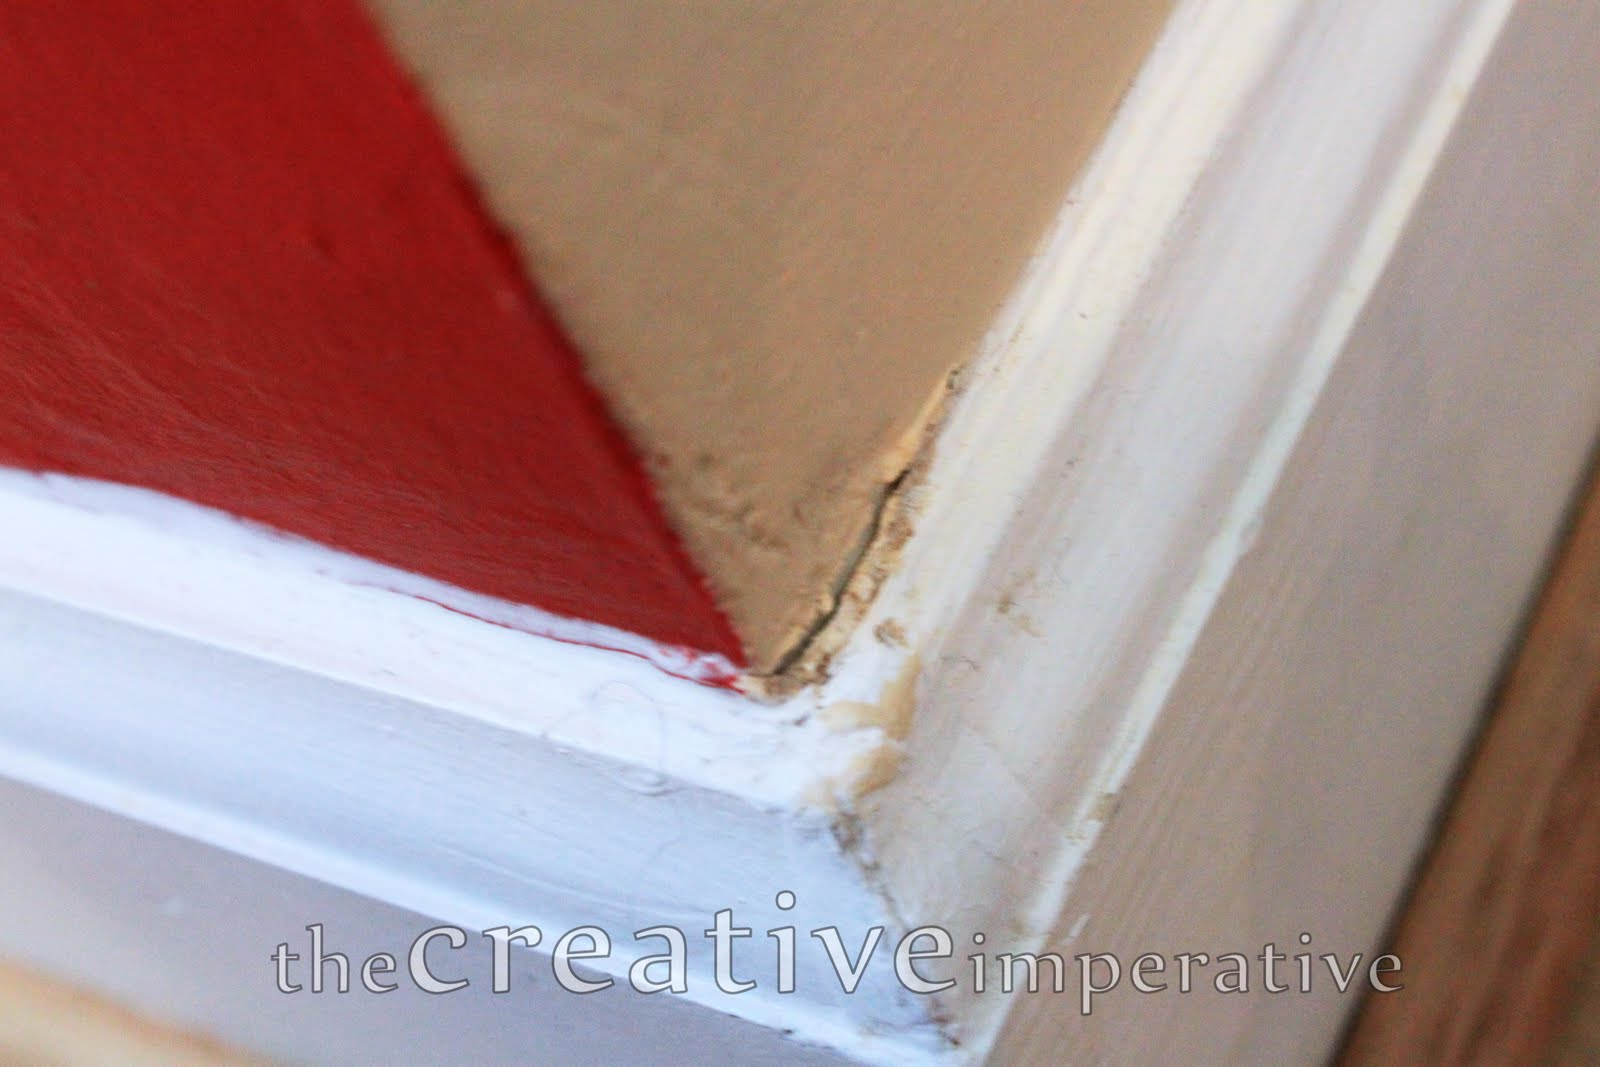 Best Caulk For Trim The Creative Imperative Tricks Of The Trade Caulk Is Cheap